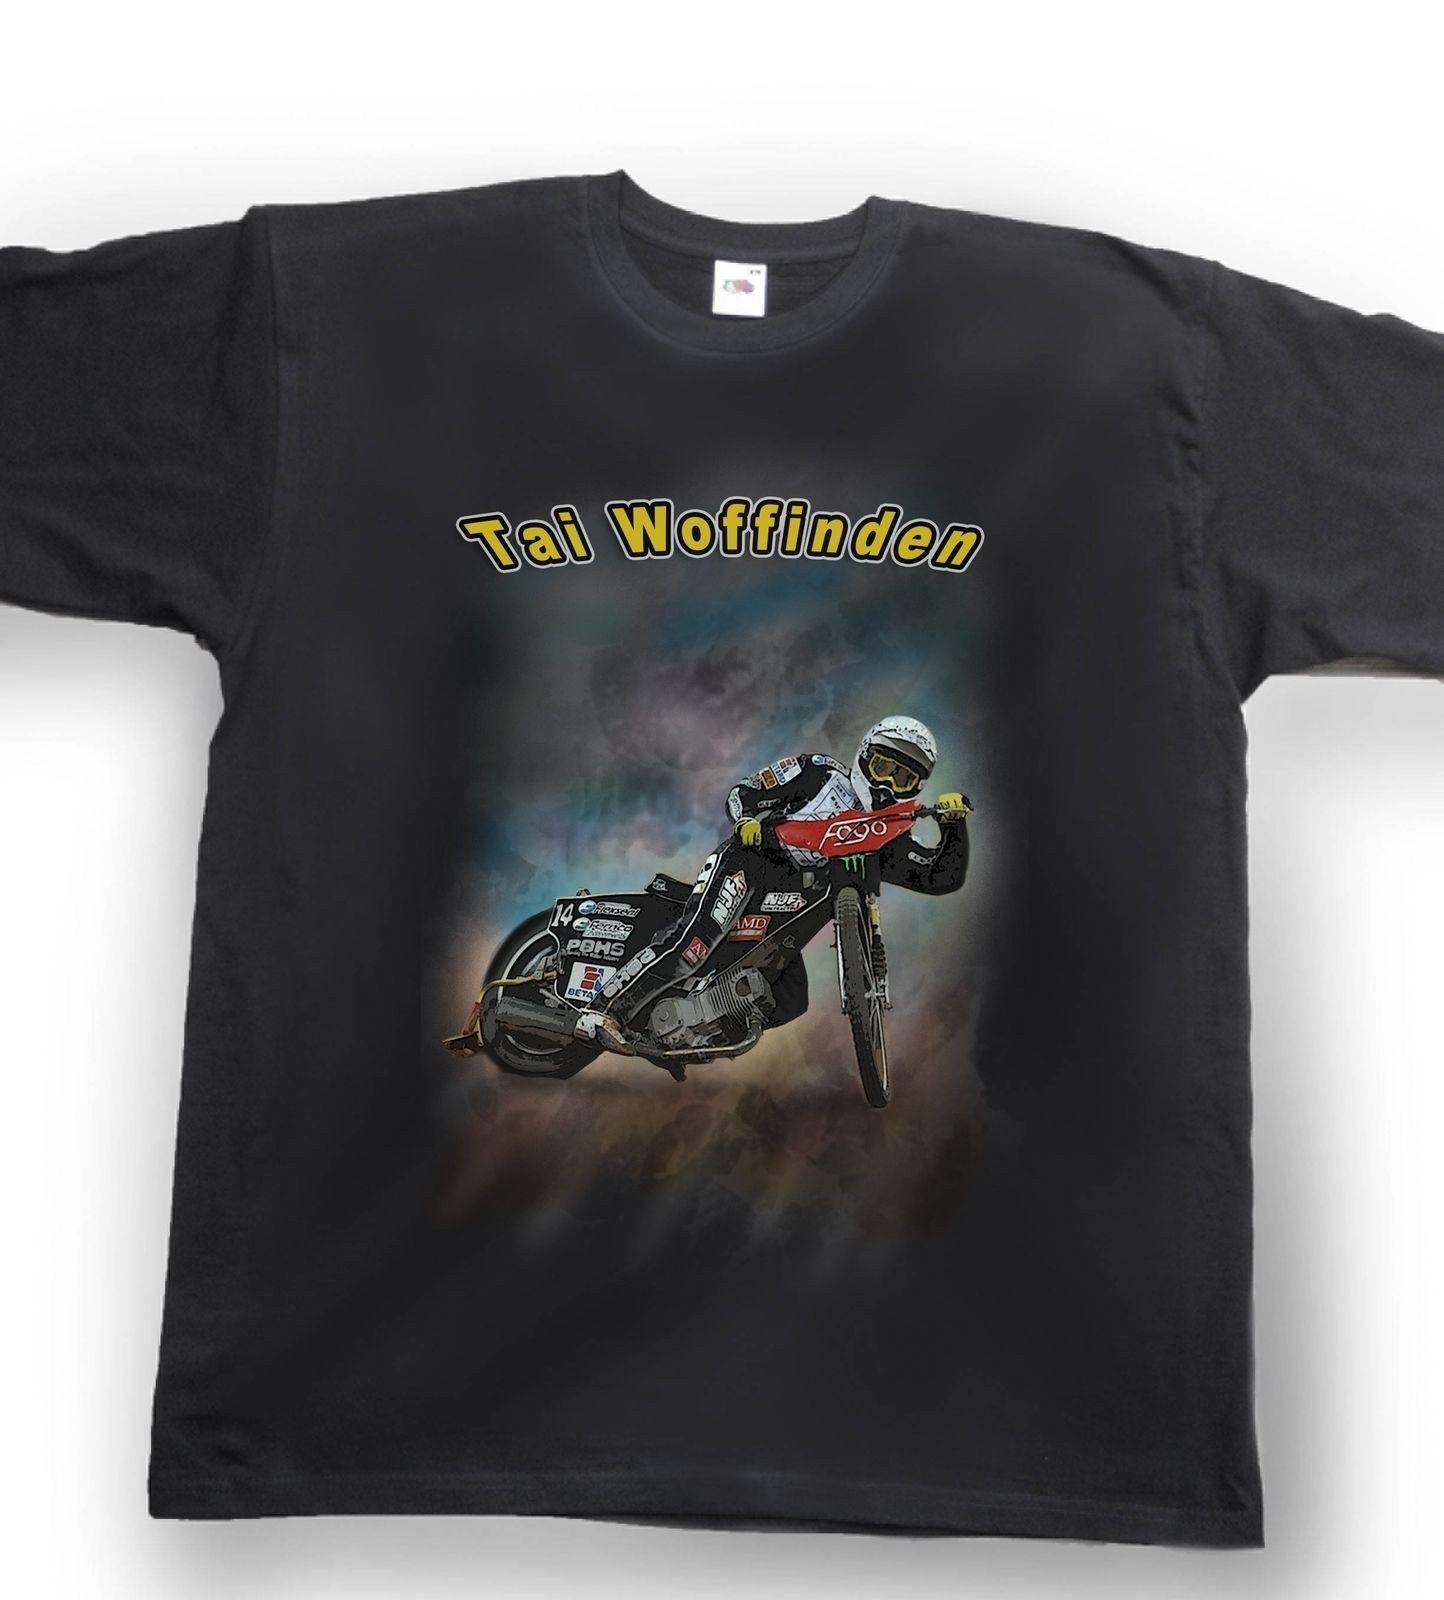 4980dcbe Airbrushed Speedway T Shirt Speedway Rider Tai Woffinden Sizes Small To  XXXLFunny Unisex Casual Tshirt Top Cool Shirt Designs T Shirt Quotes From  ...